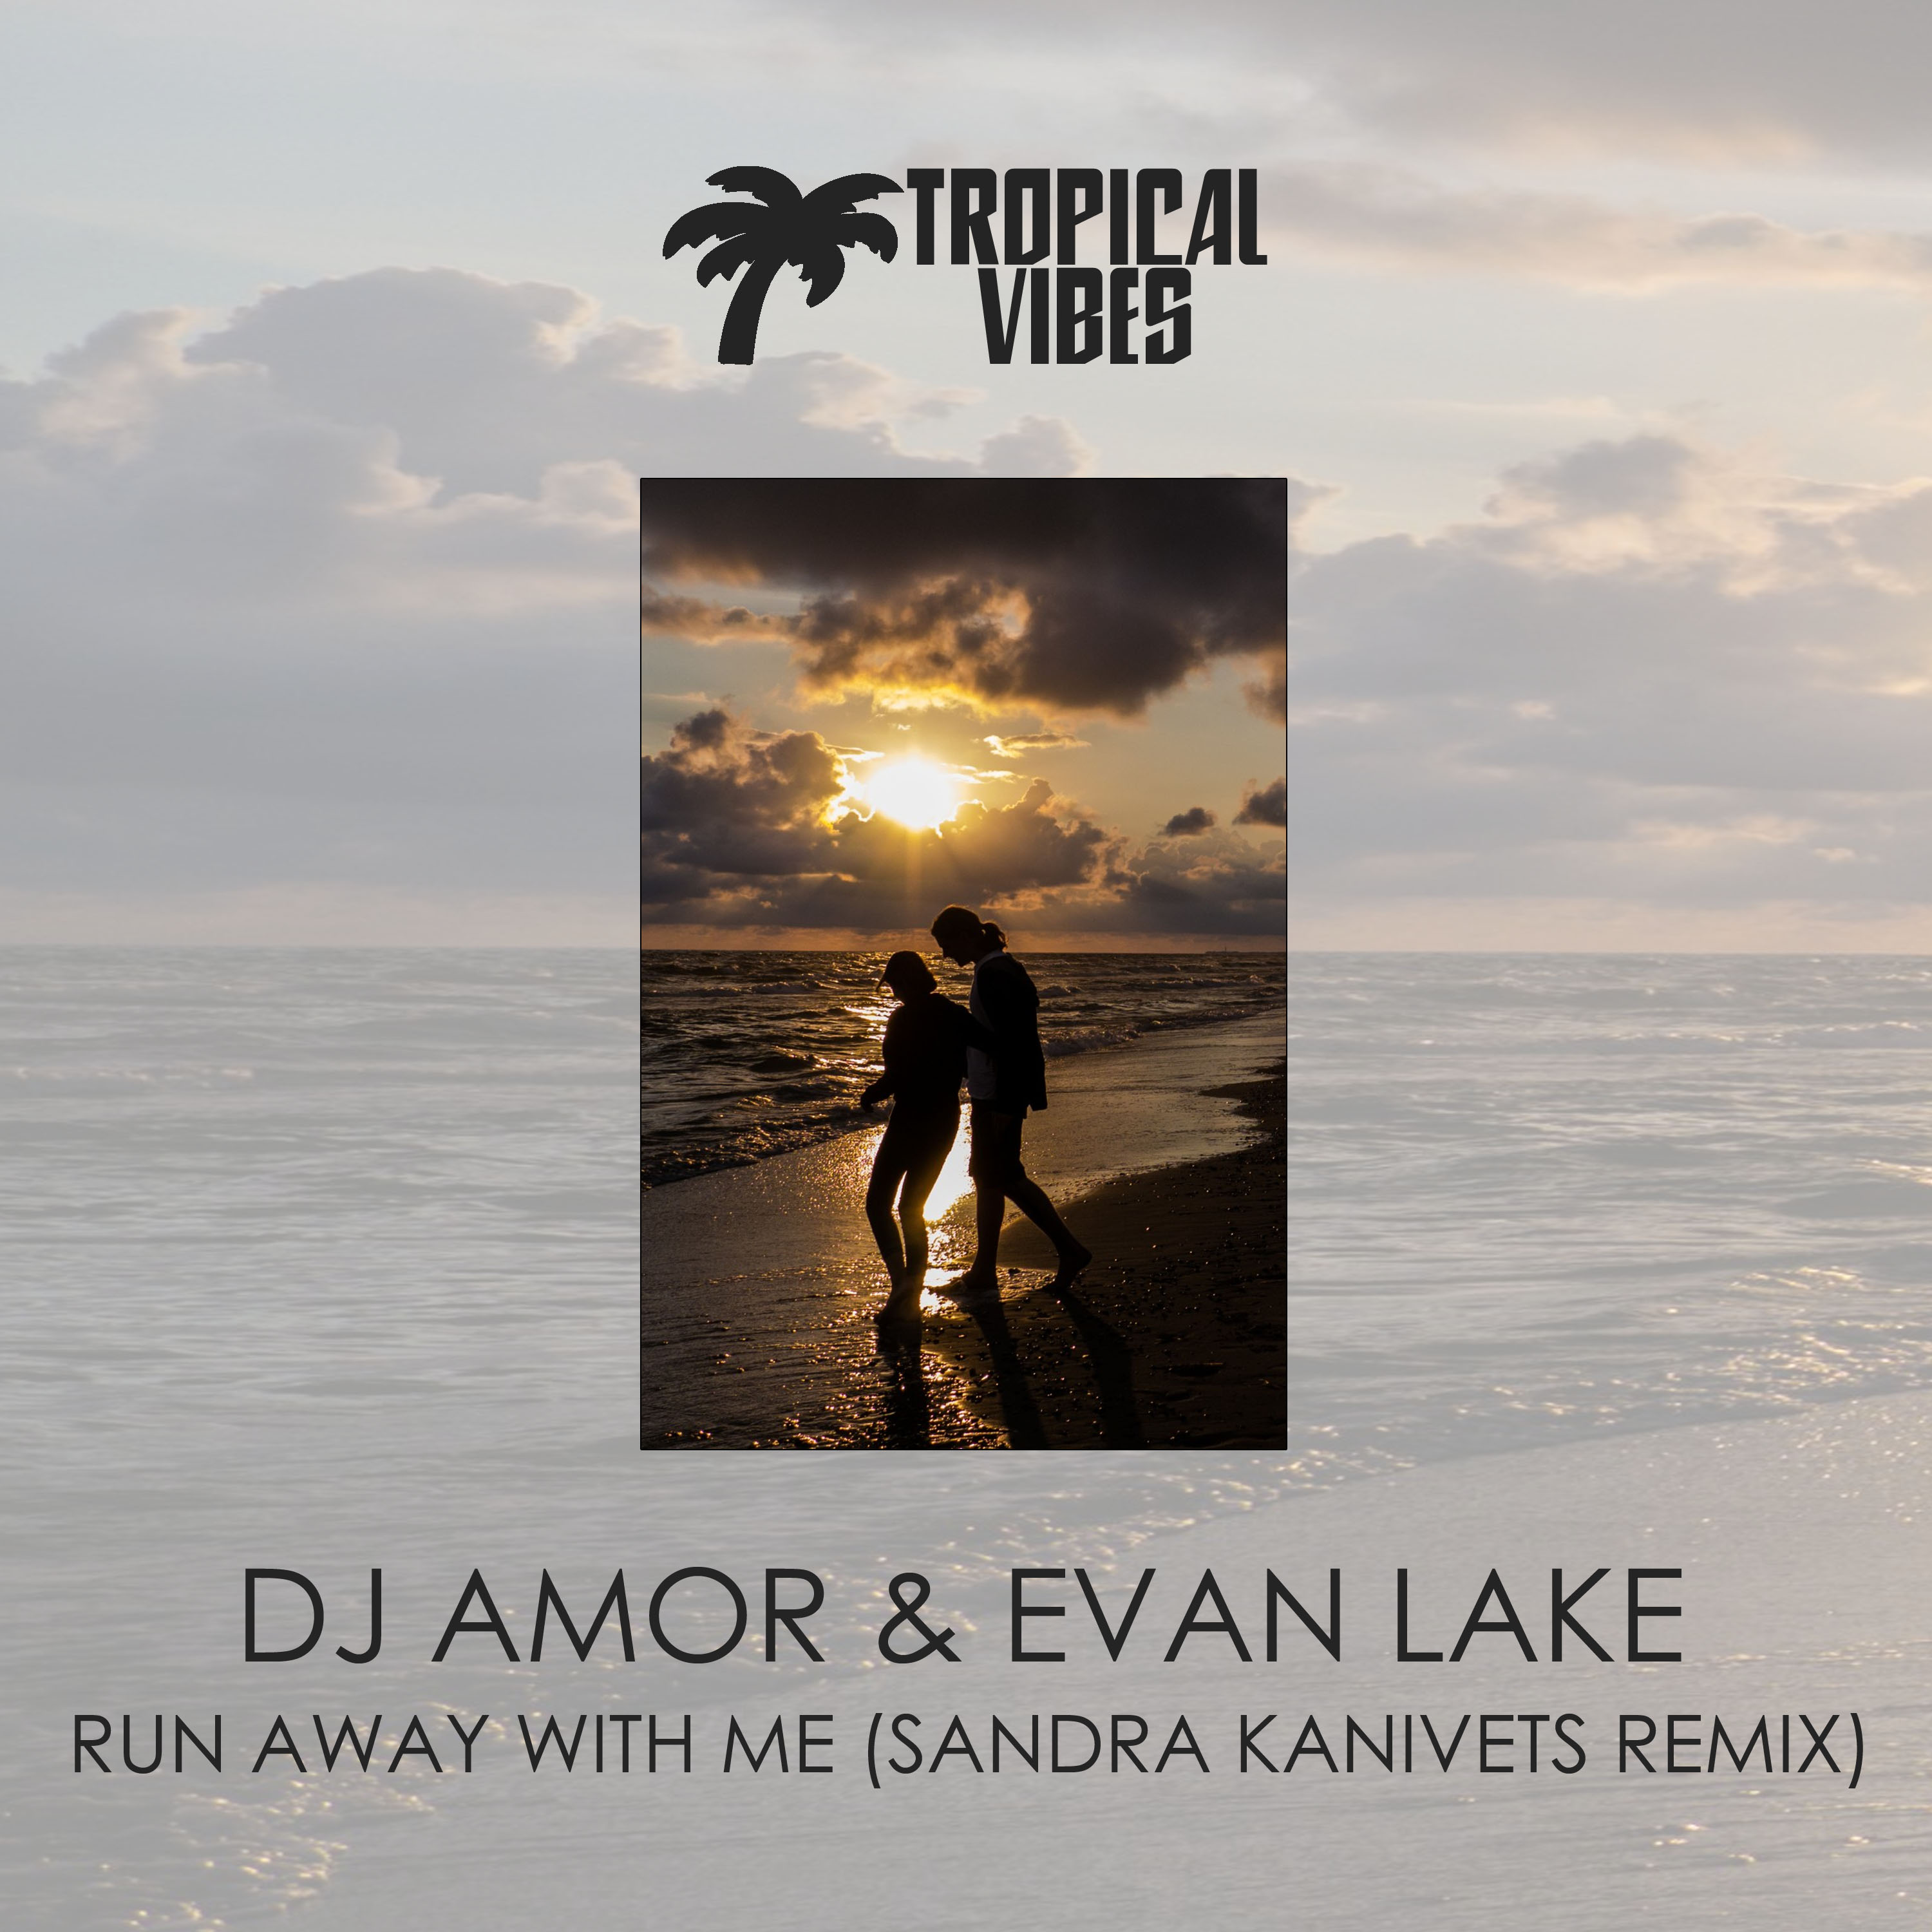 DJ Amor & Evan Lake - Run Away With Me (Sandra Kanivets Remix)